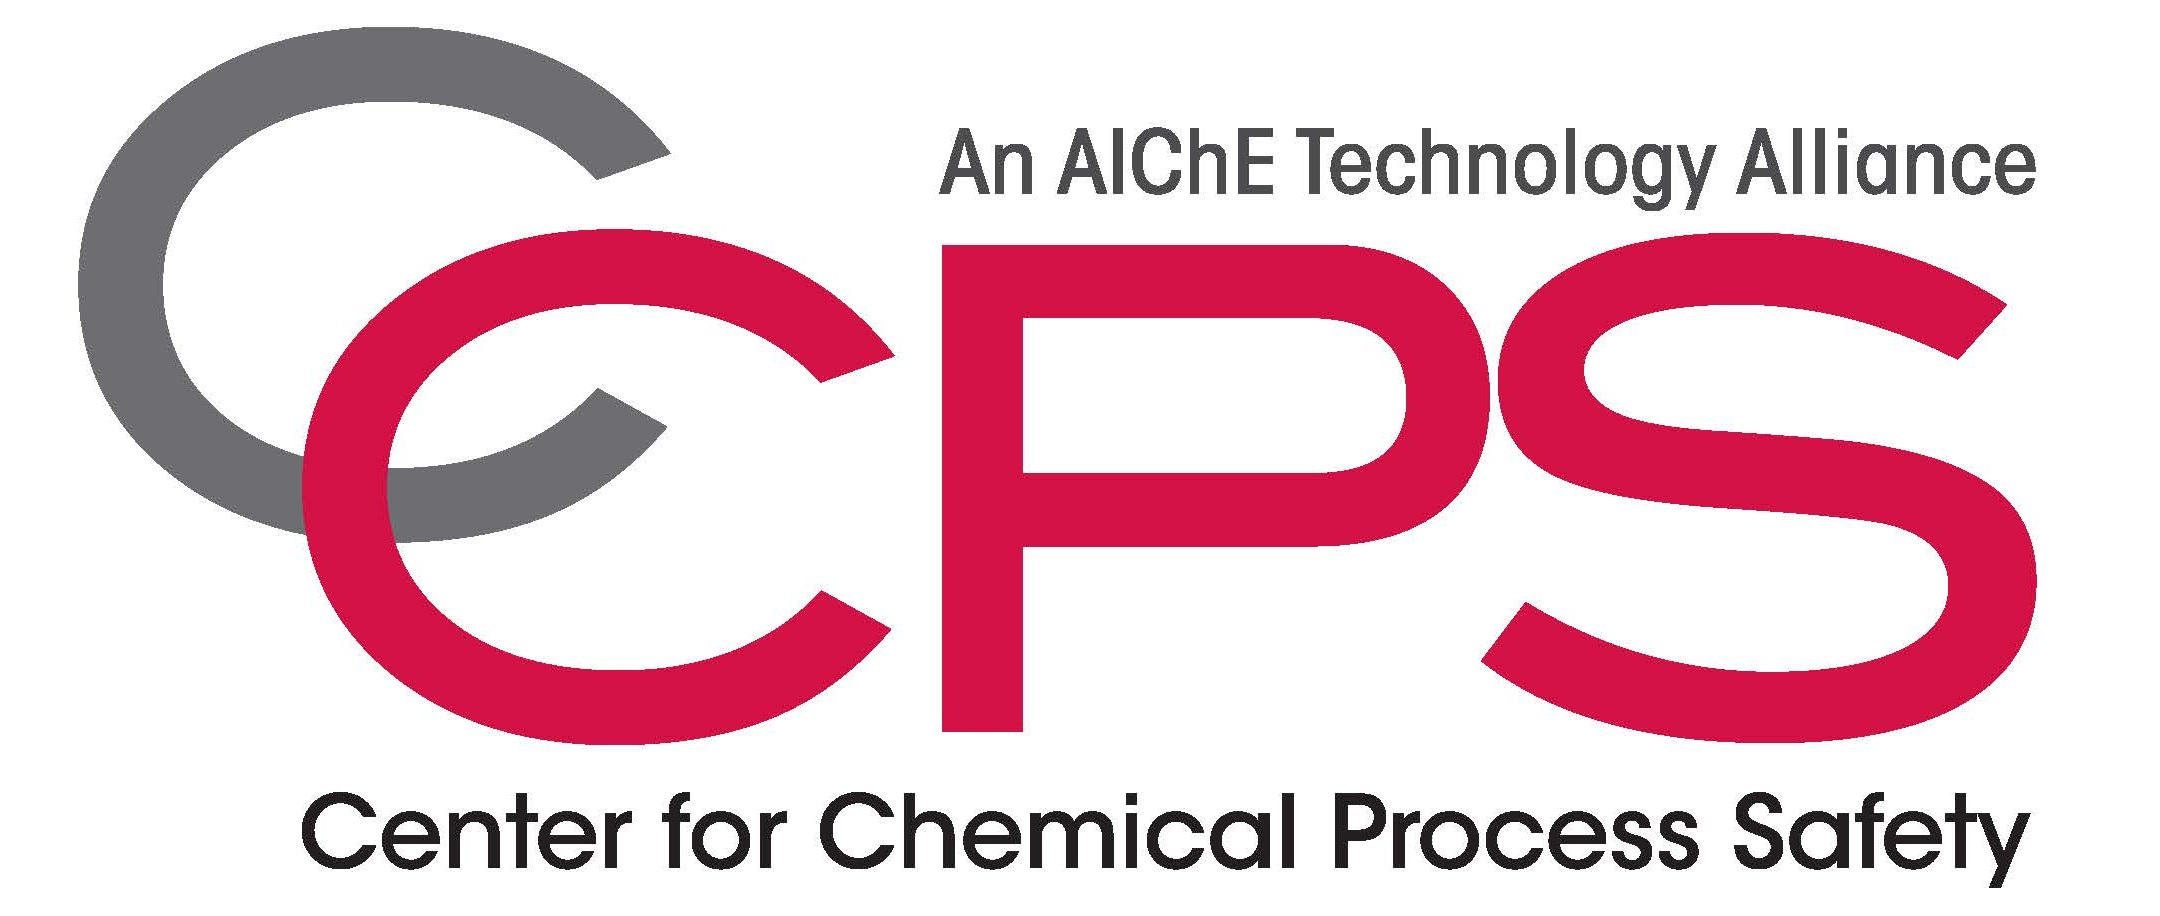 logo for 'AIChE Center for Chemical Process Safety'